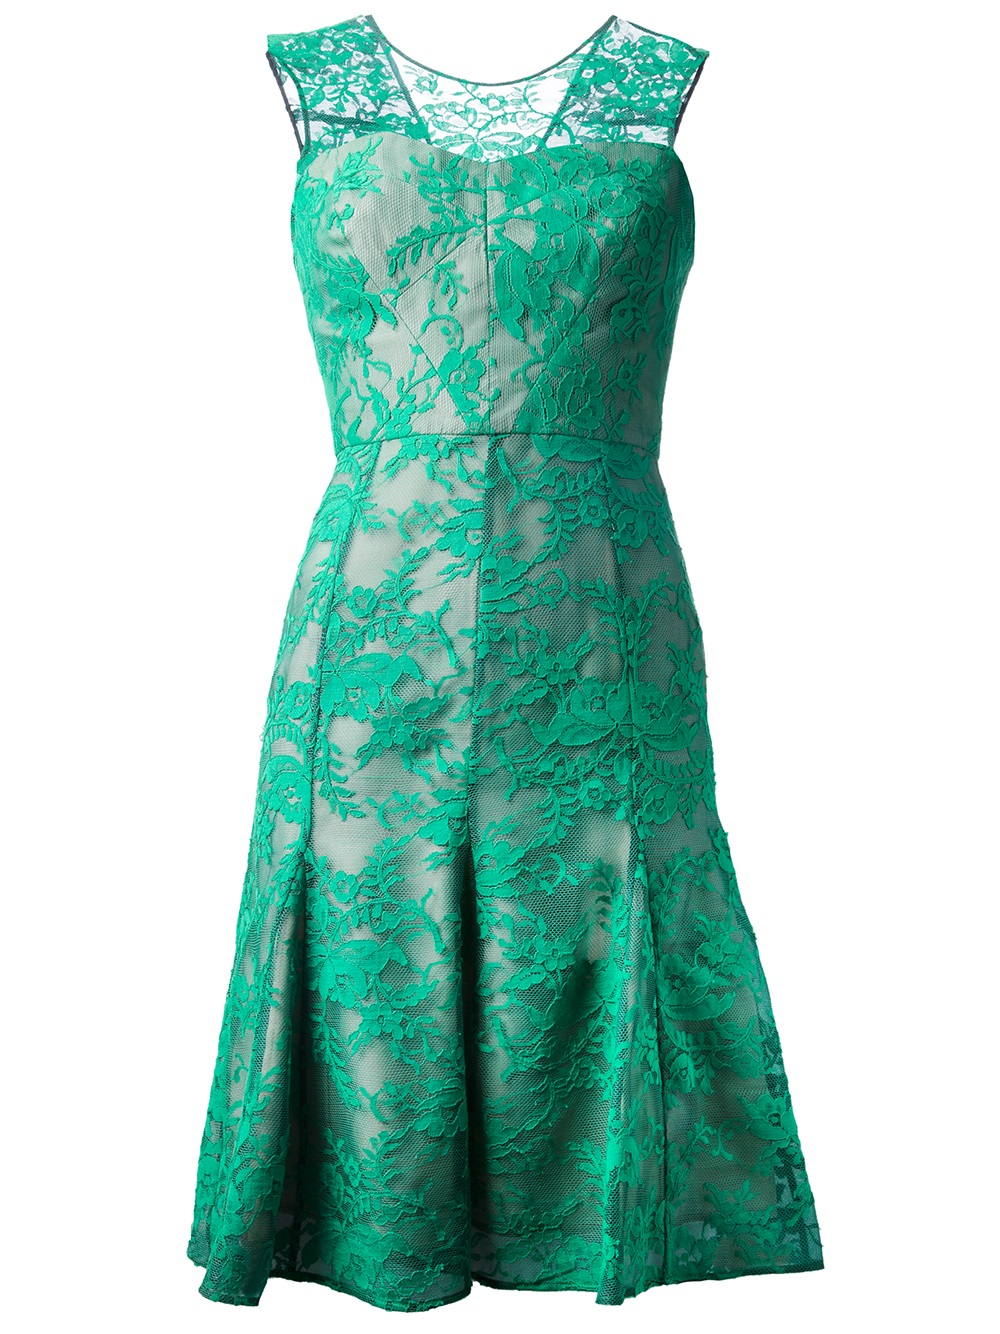 Erdem Floral Lace Flared Dress In Green Lyst